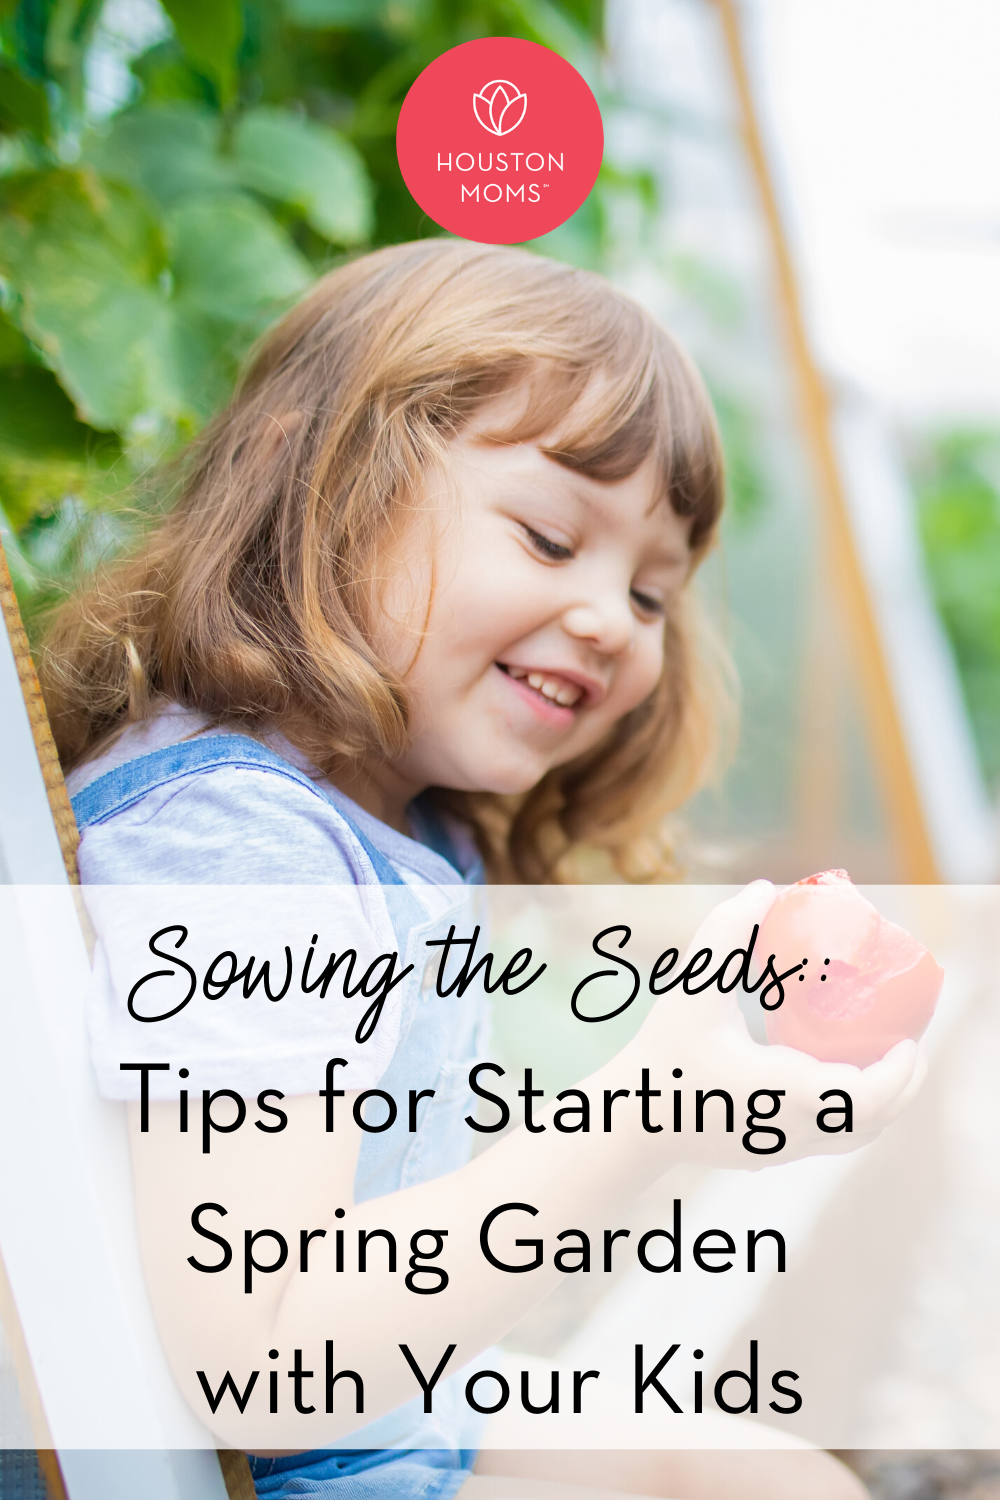 "Houston Moms ""Sowing the Seeds:: Tips for Starting a Spring Garden with Your Kids"" #houstonmomsblog #houstonmoms #momsaroundhouston"